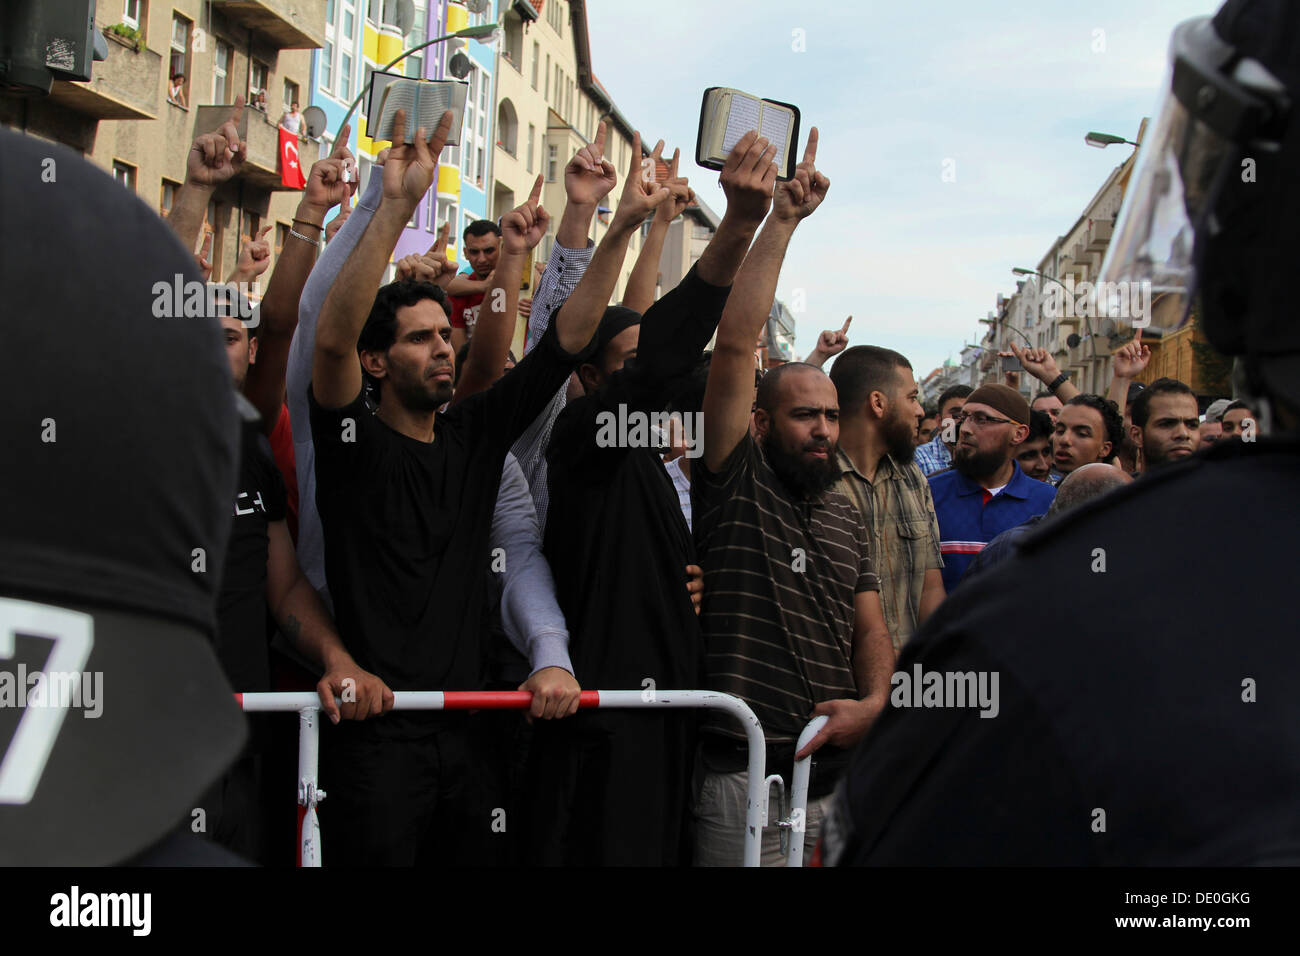 Protest against an anti-Islamic rally by the minor political party Pro Deutschland in front of a mosque in Berlin-Neukoelln, - Stock Image